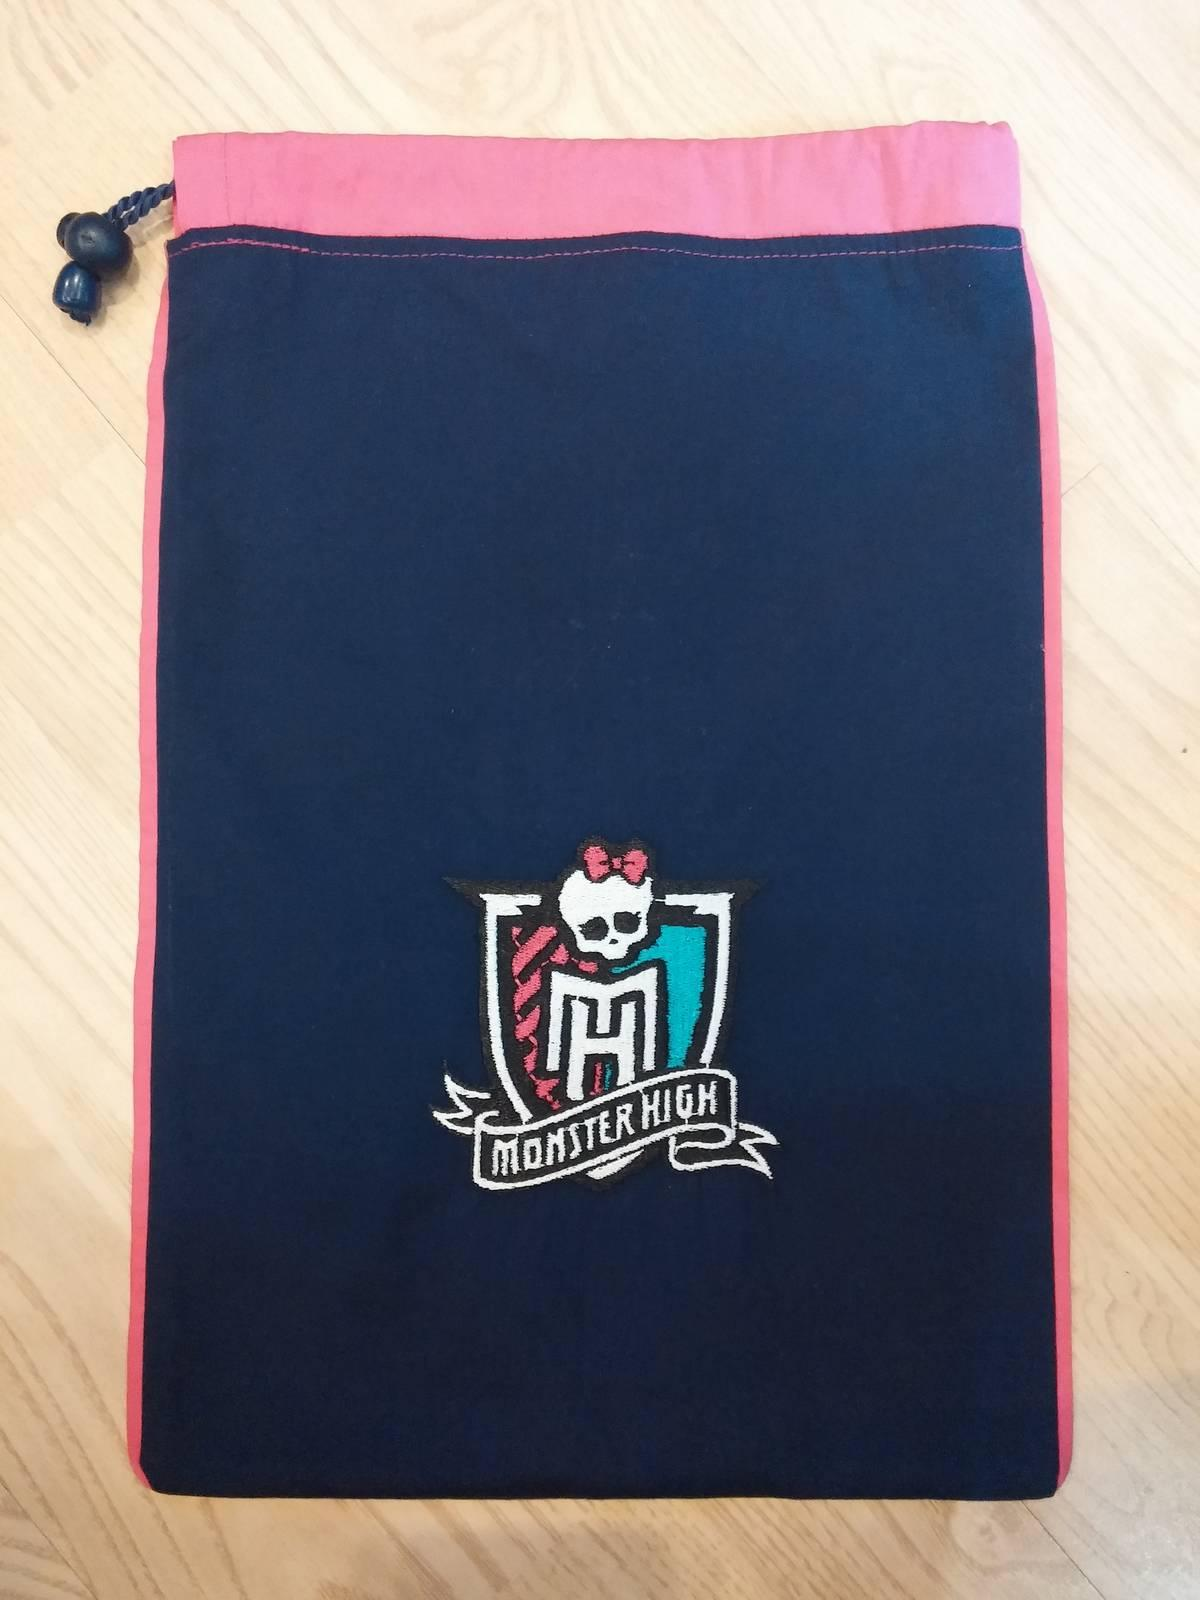 Embroidered school bag with Monster High logo design